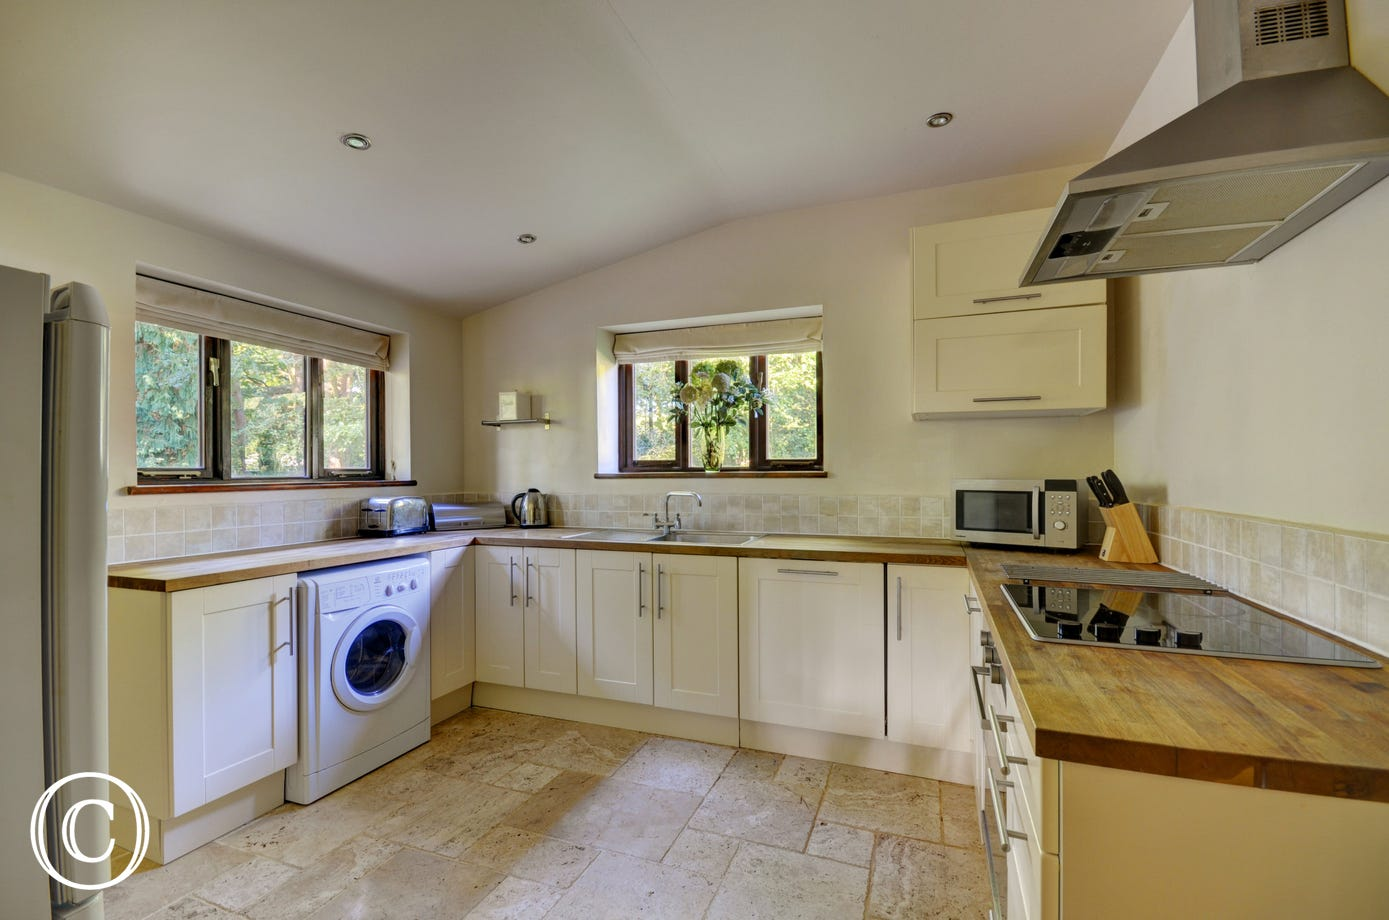 The built in cooker has a stainless steel cooker hood with extractor over, the window looks out to the garden